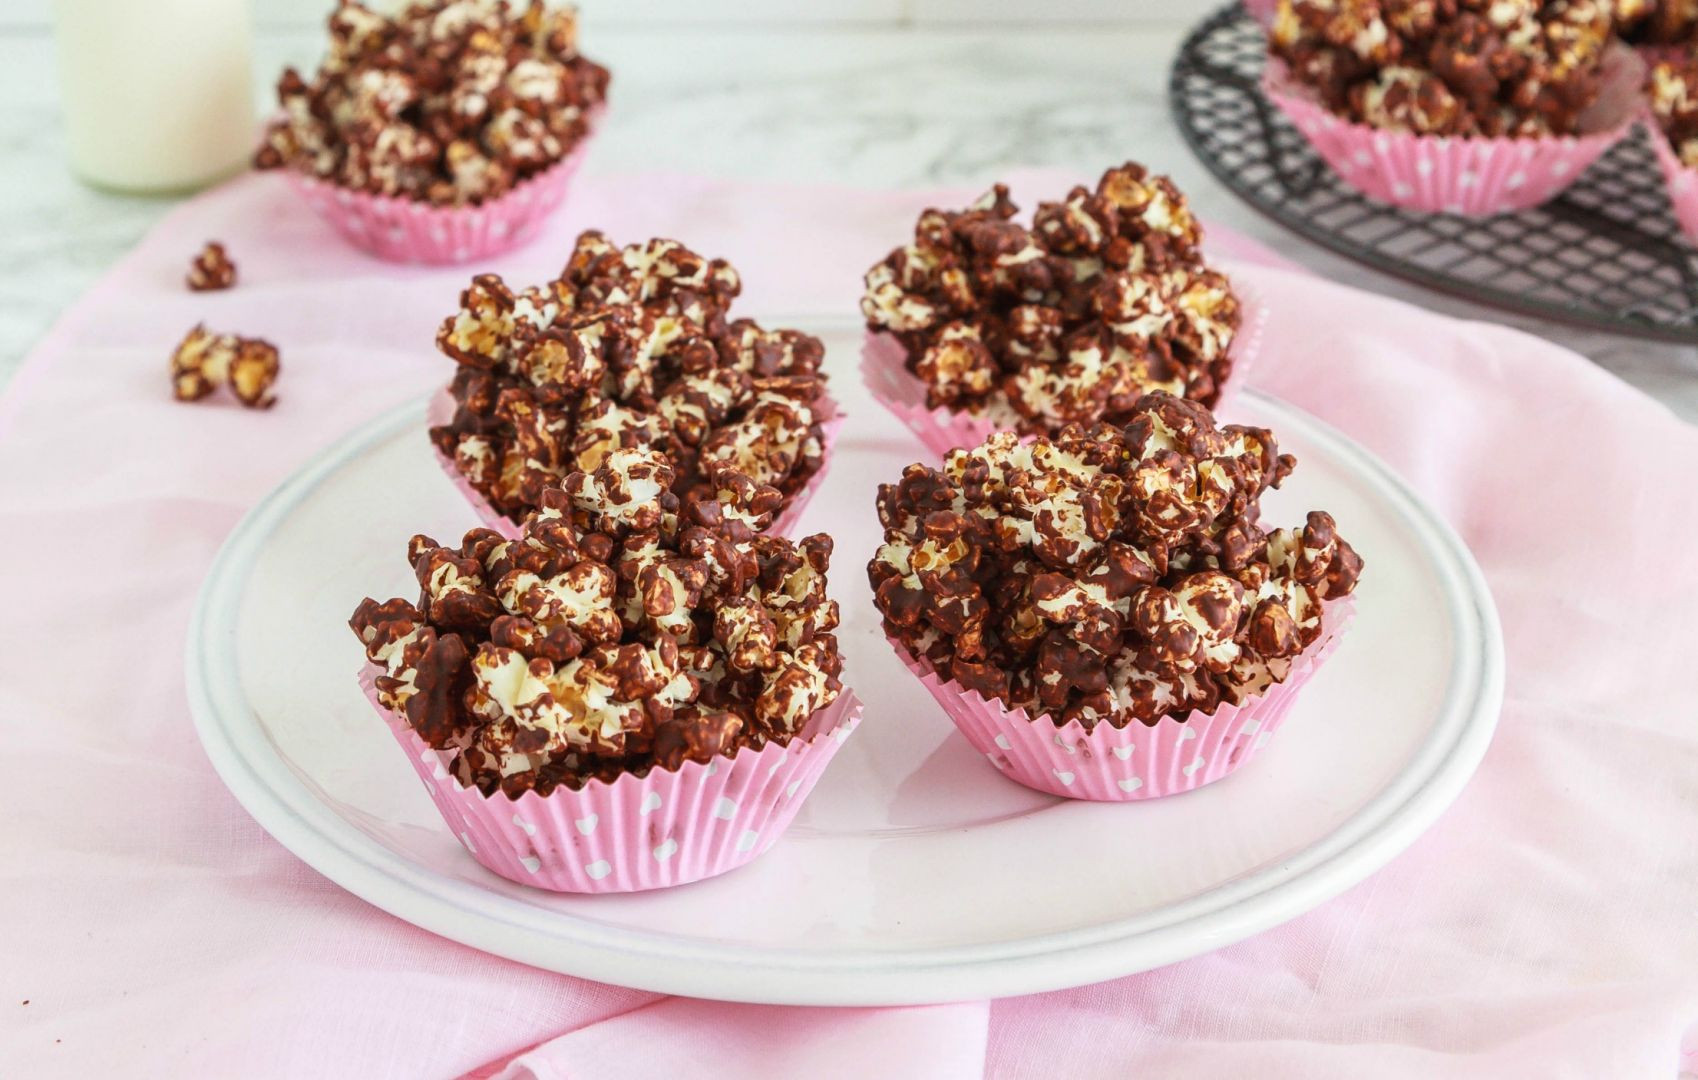 Healthy Sweet Snacks  Lose Baby Weight 5 Healthy Sweet Snacks For Movie Night